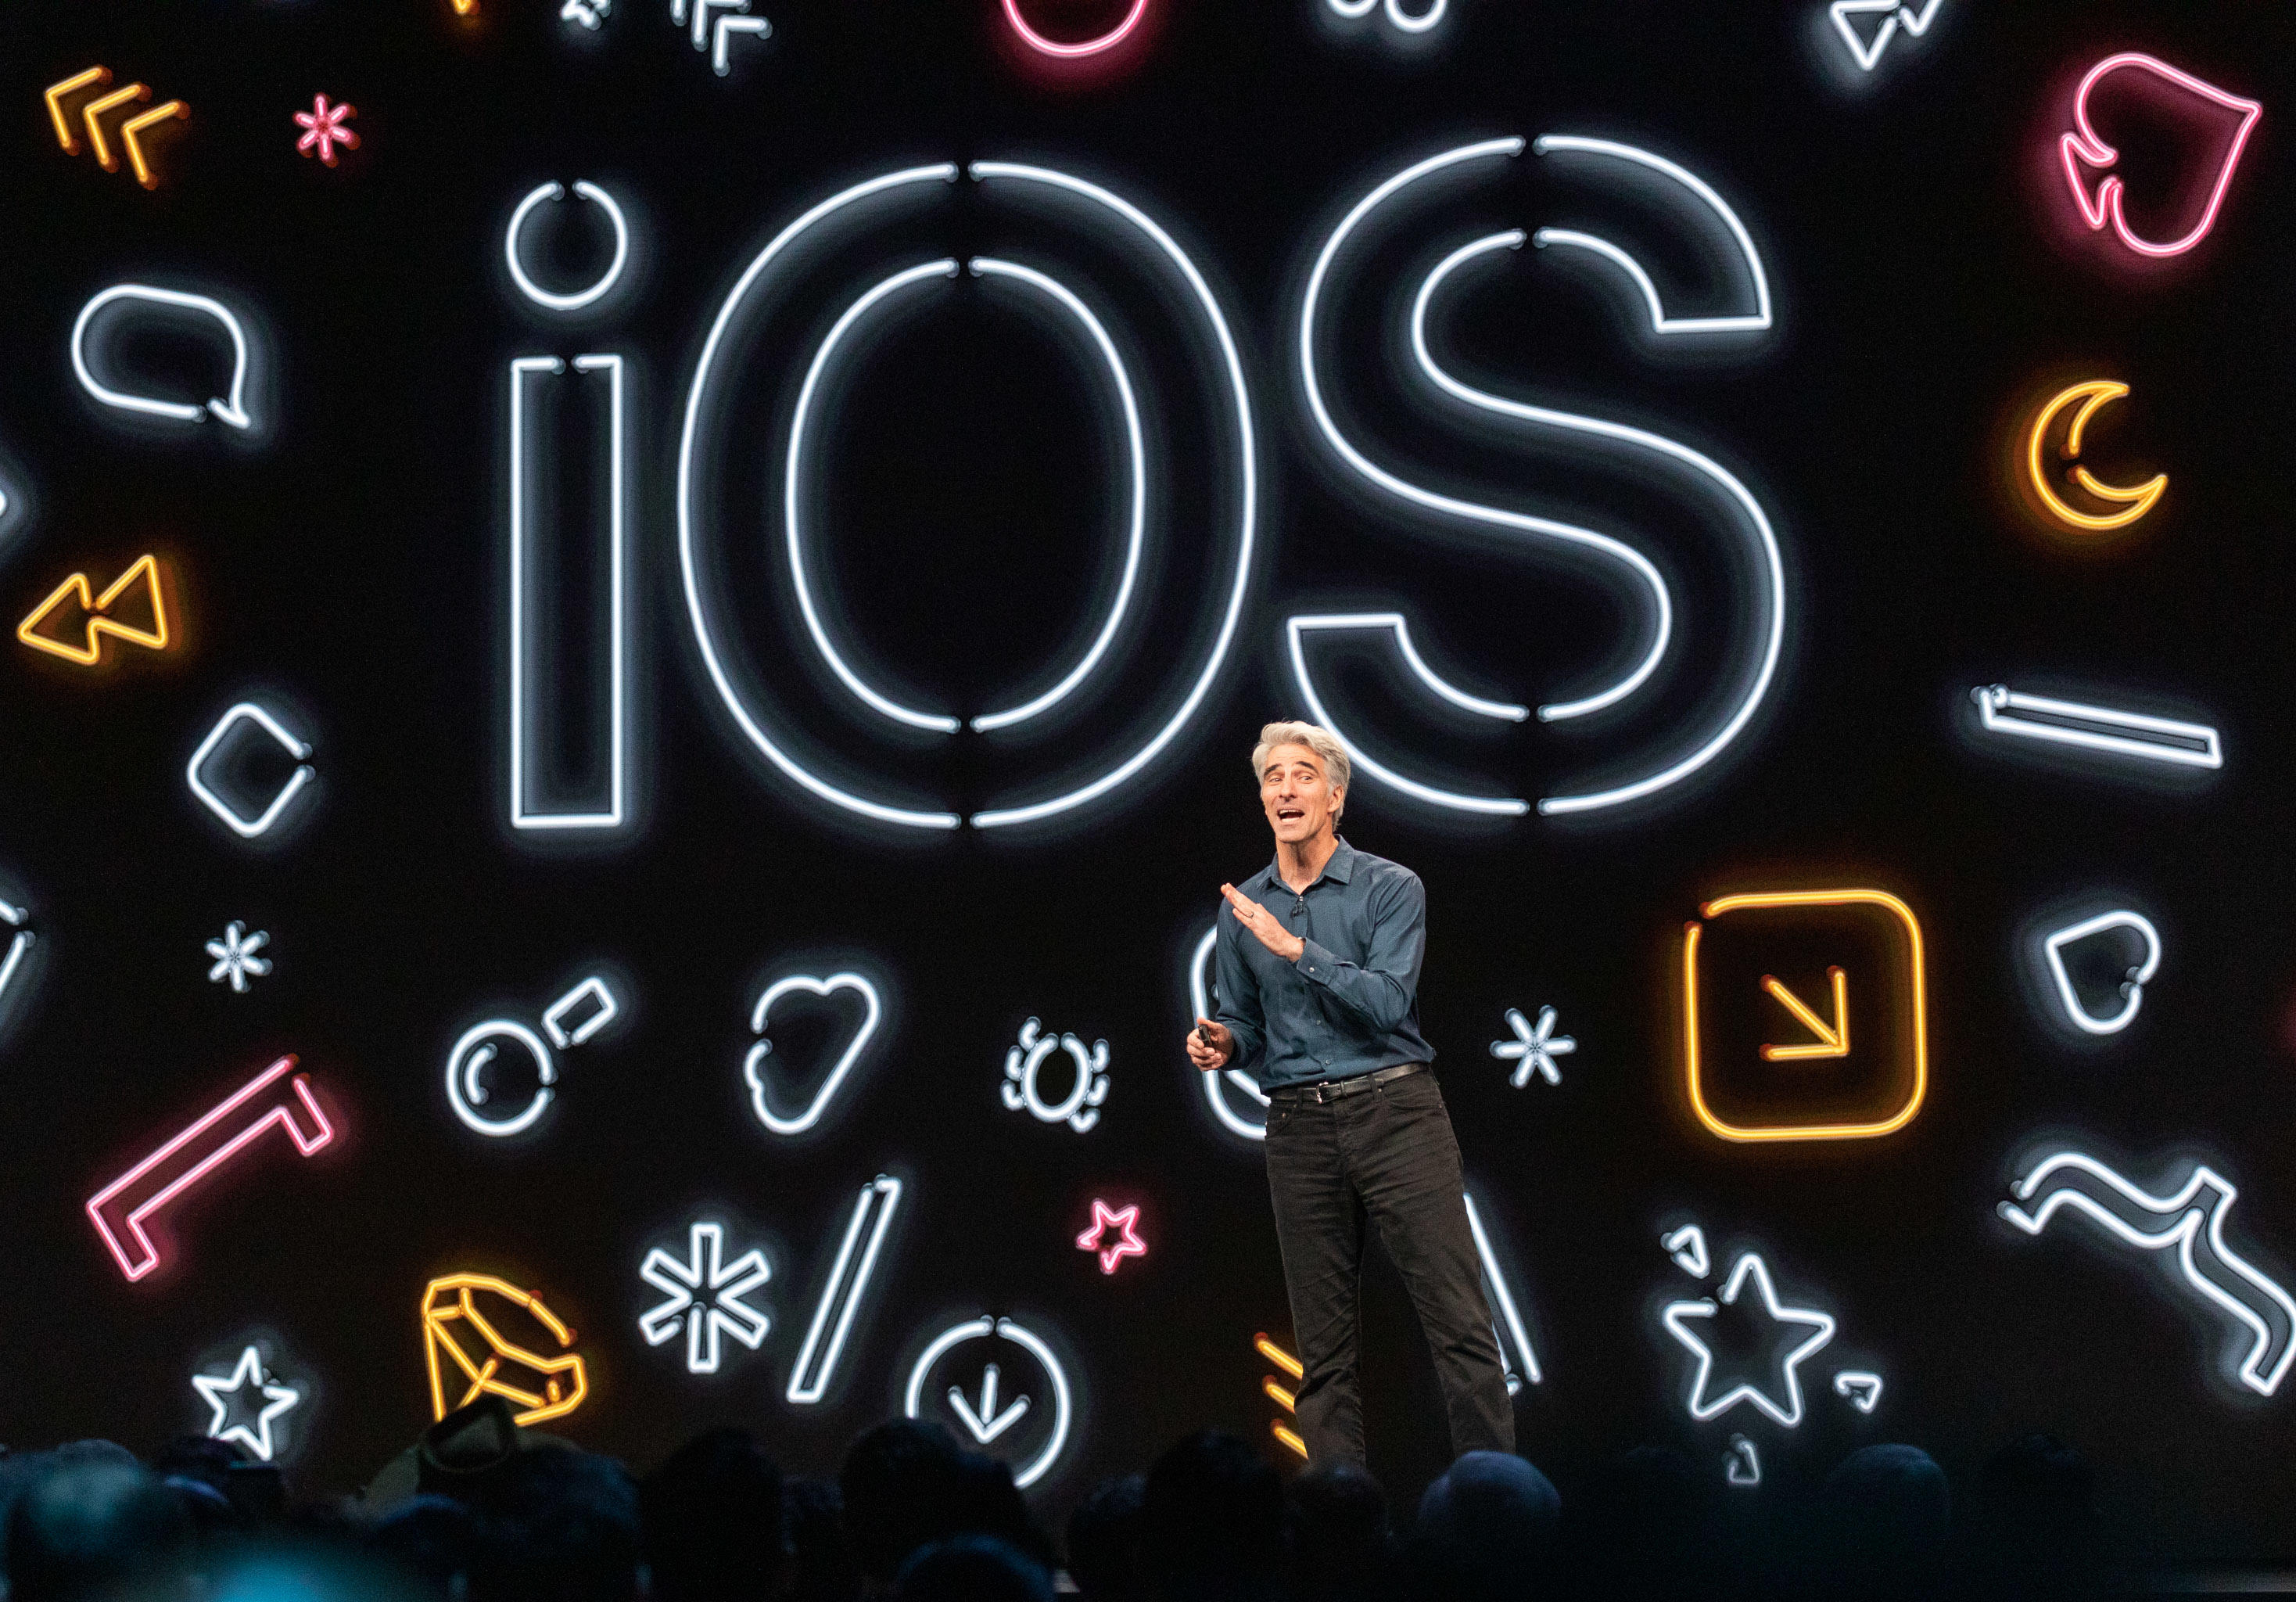 Apple's WWDC 2019 conference